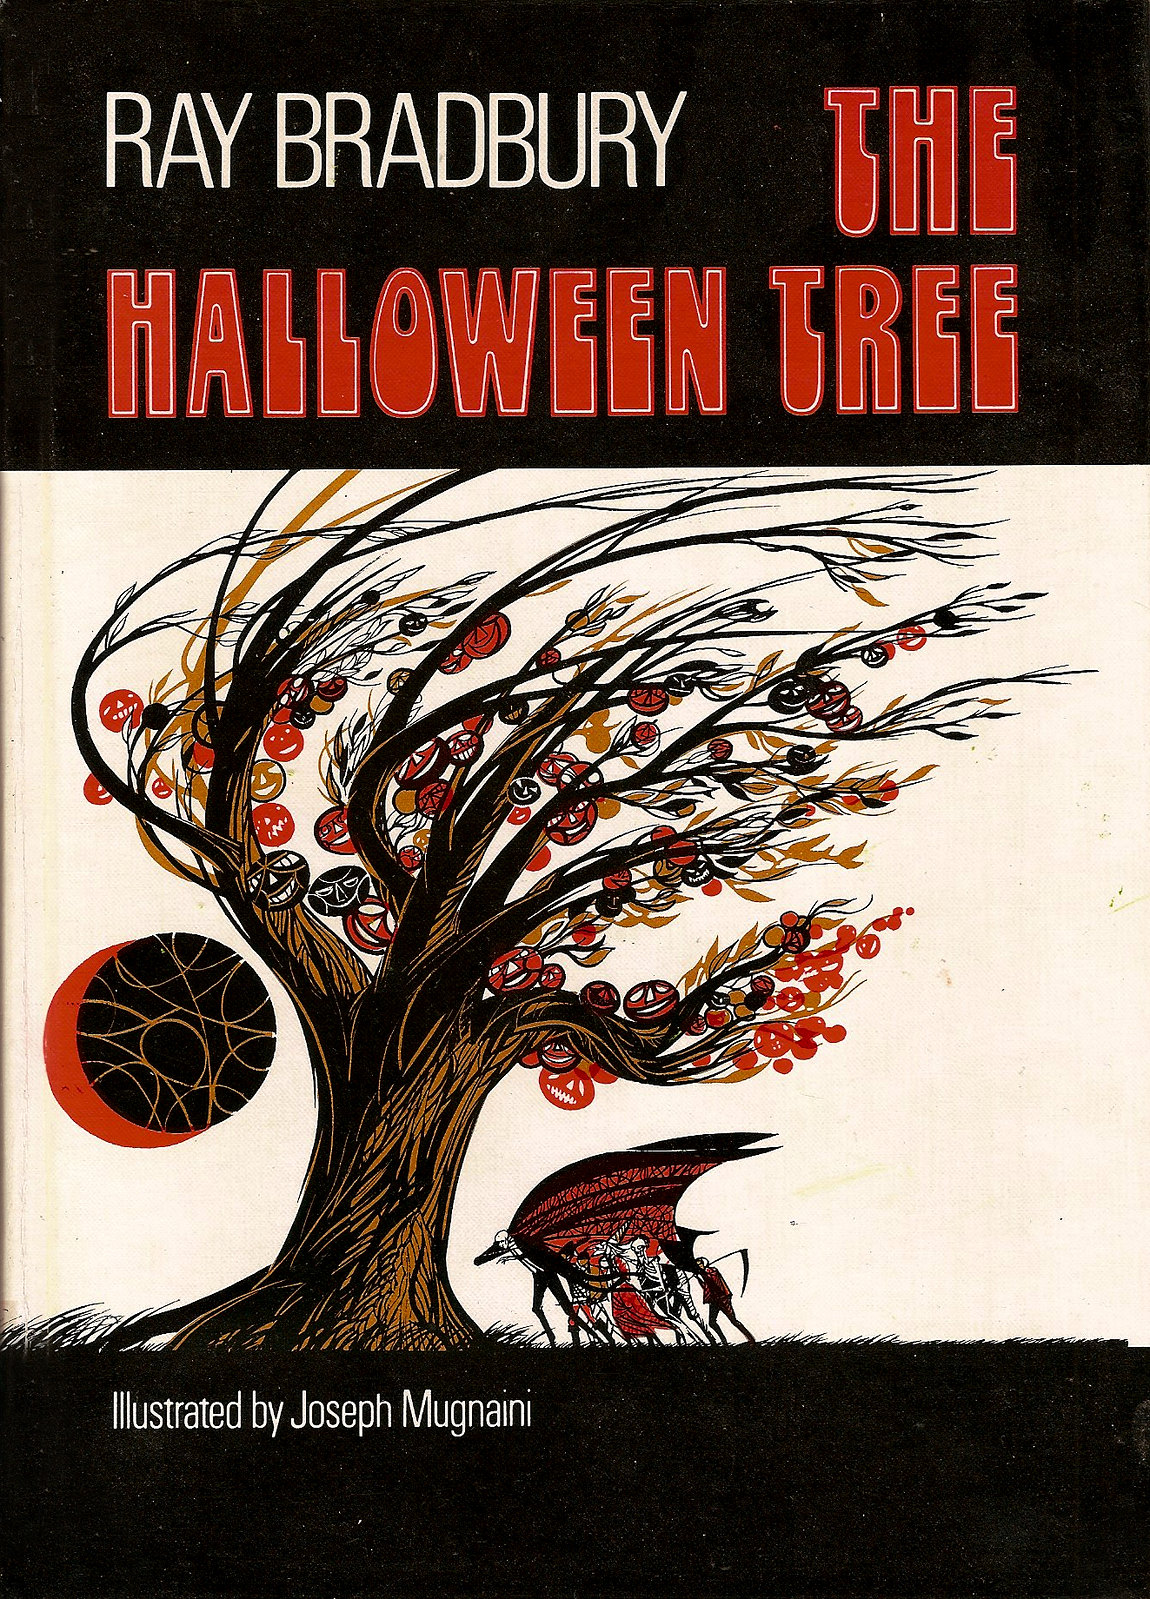 Joseph Mugnaini - Cover illustration from  The Halloween Tree, by Ray Bradbury,  1972